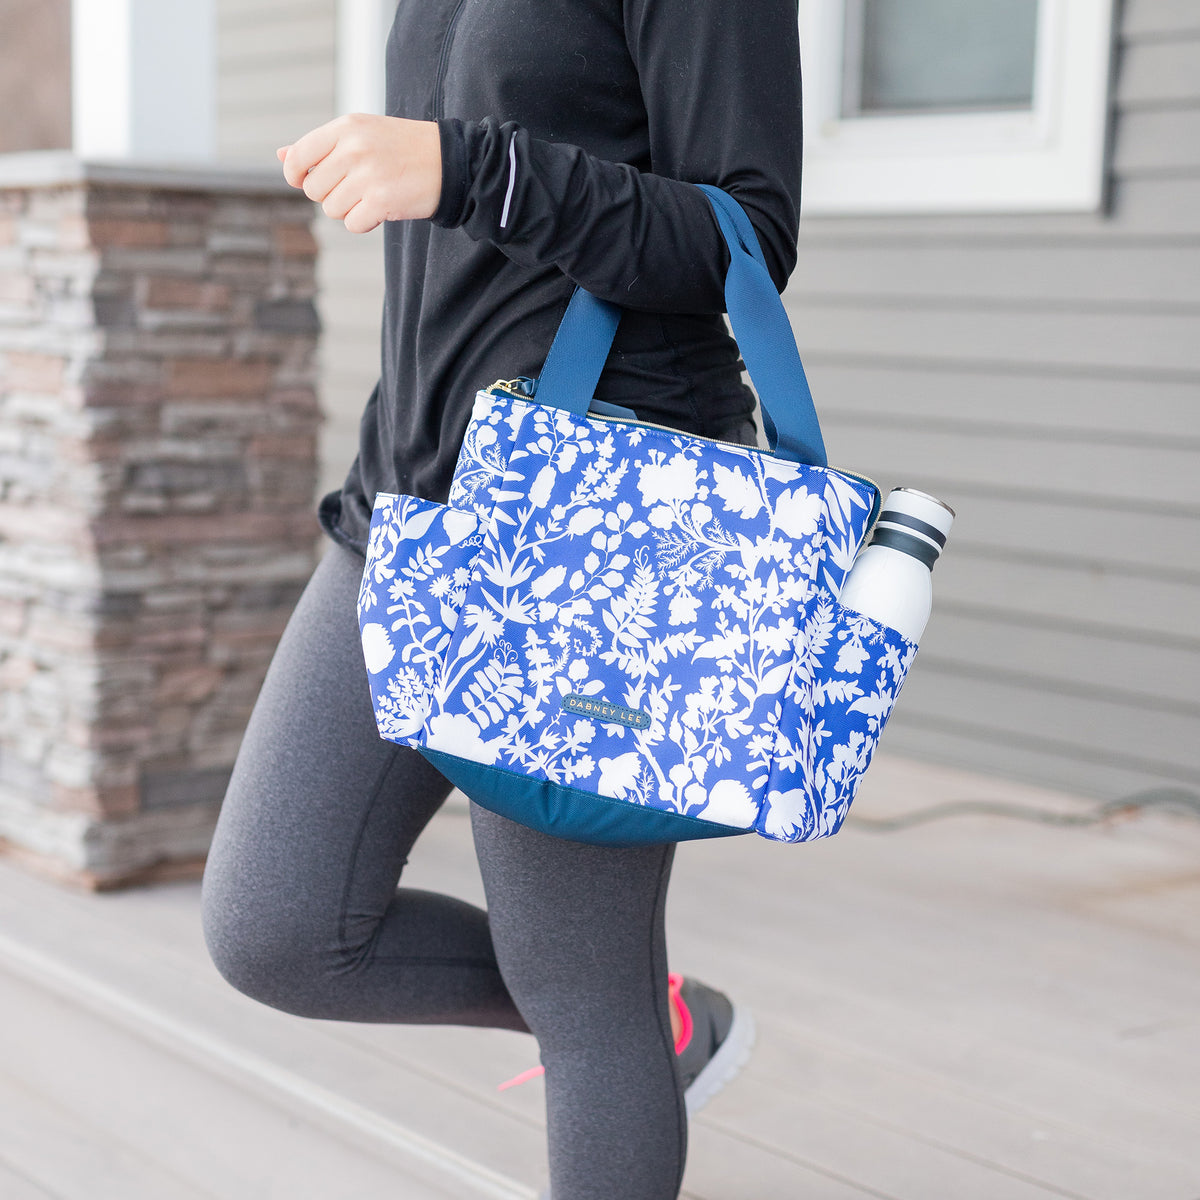 Arctic Zone® Dabney Lee Karina Tote - Summer Fling - Lifestyle, carrying the bag, walking out of the house